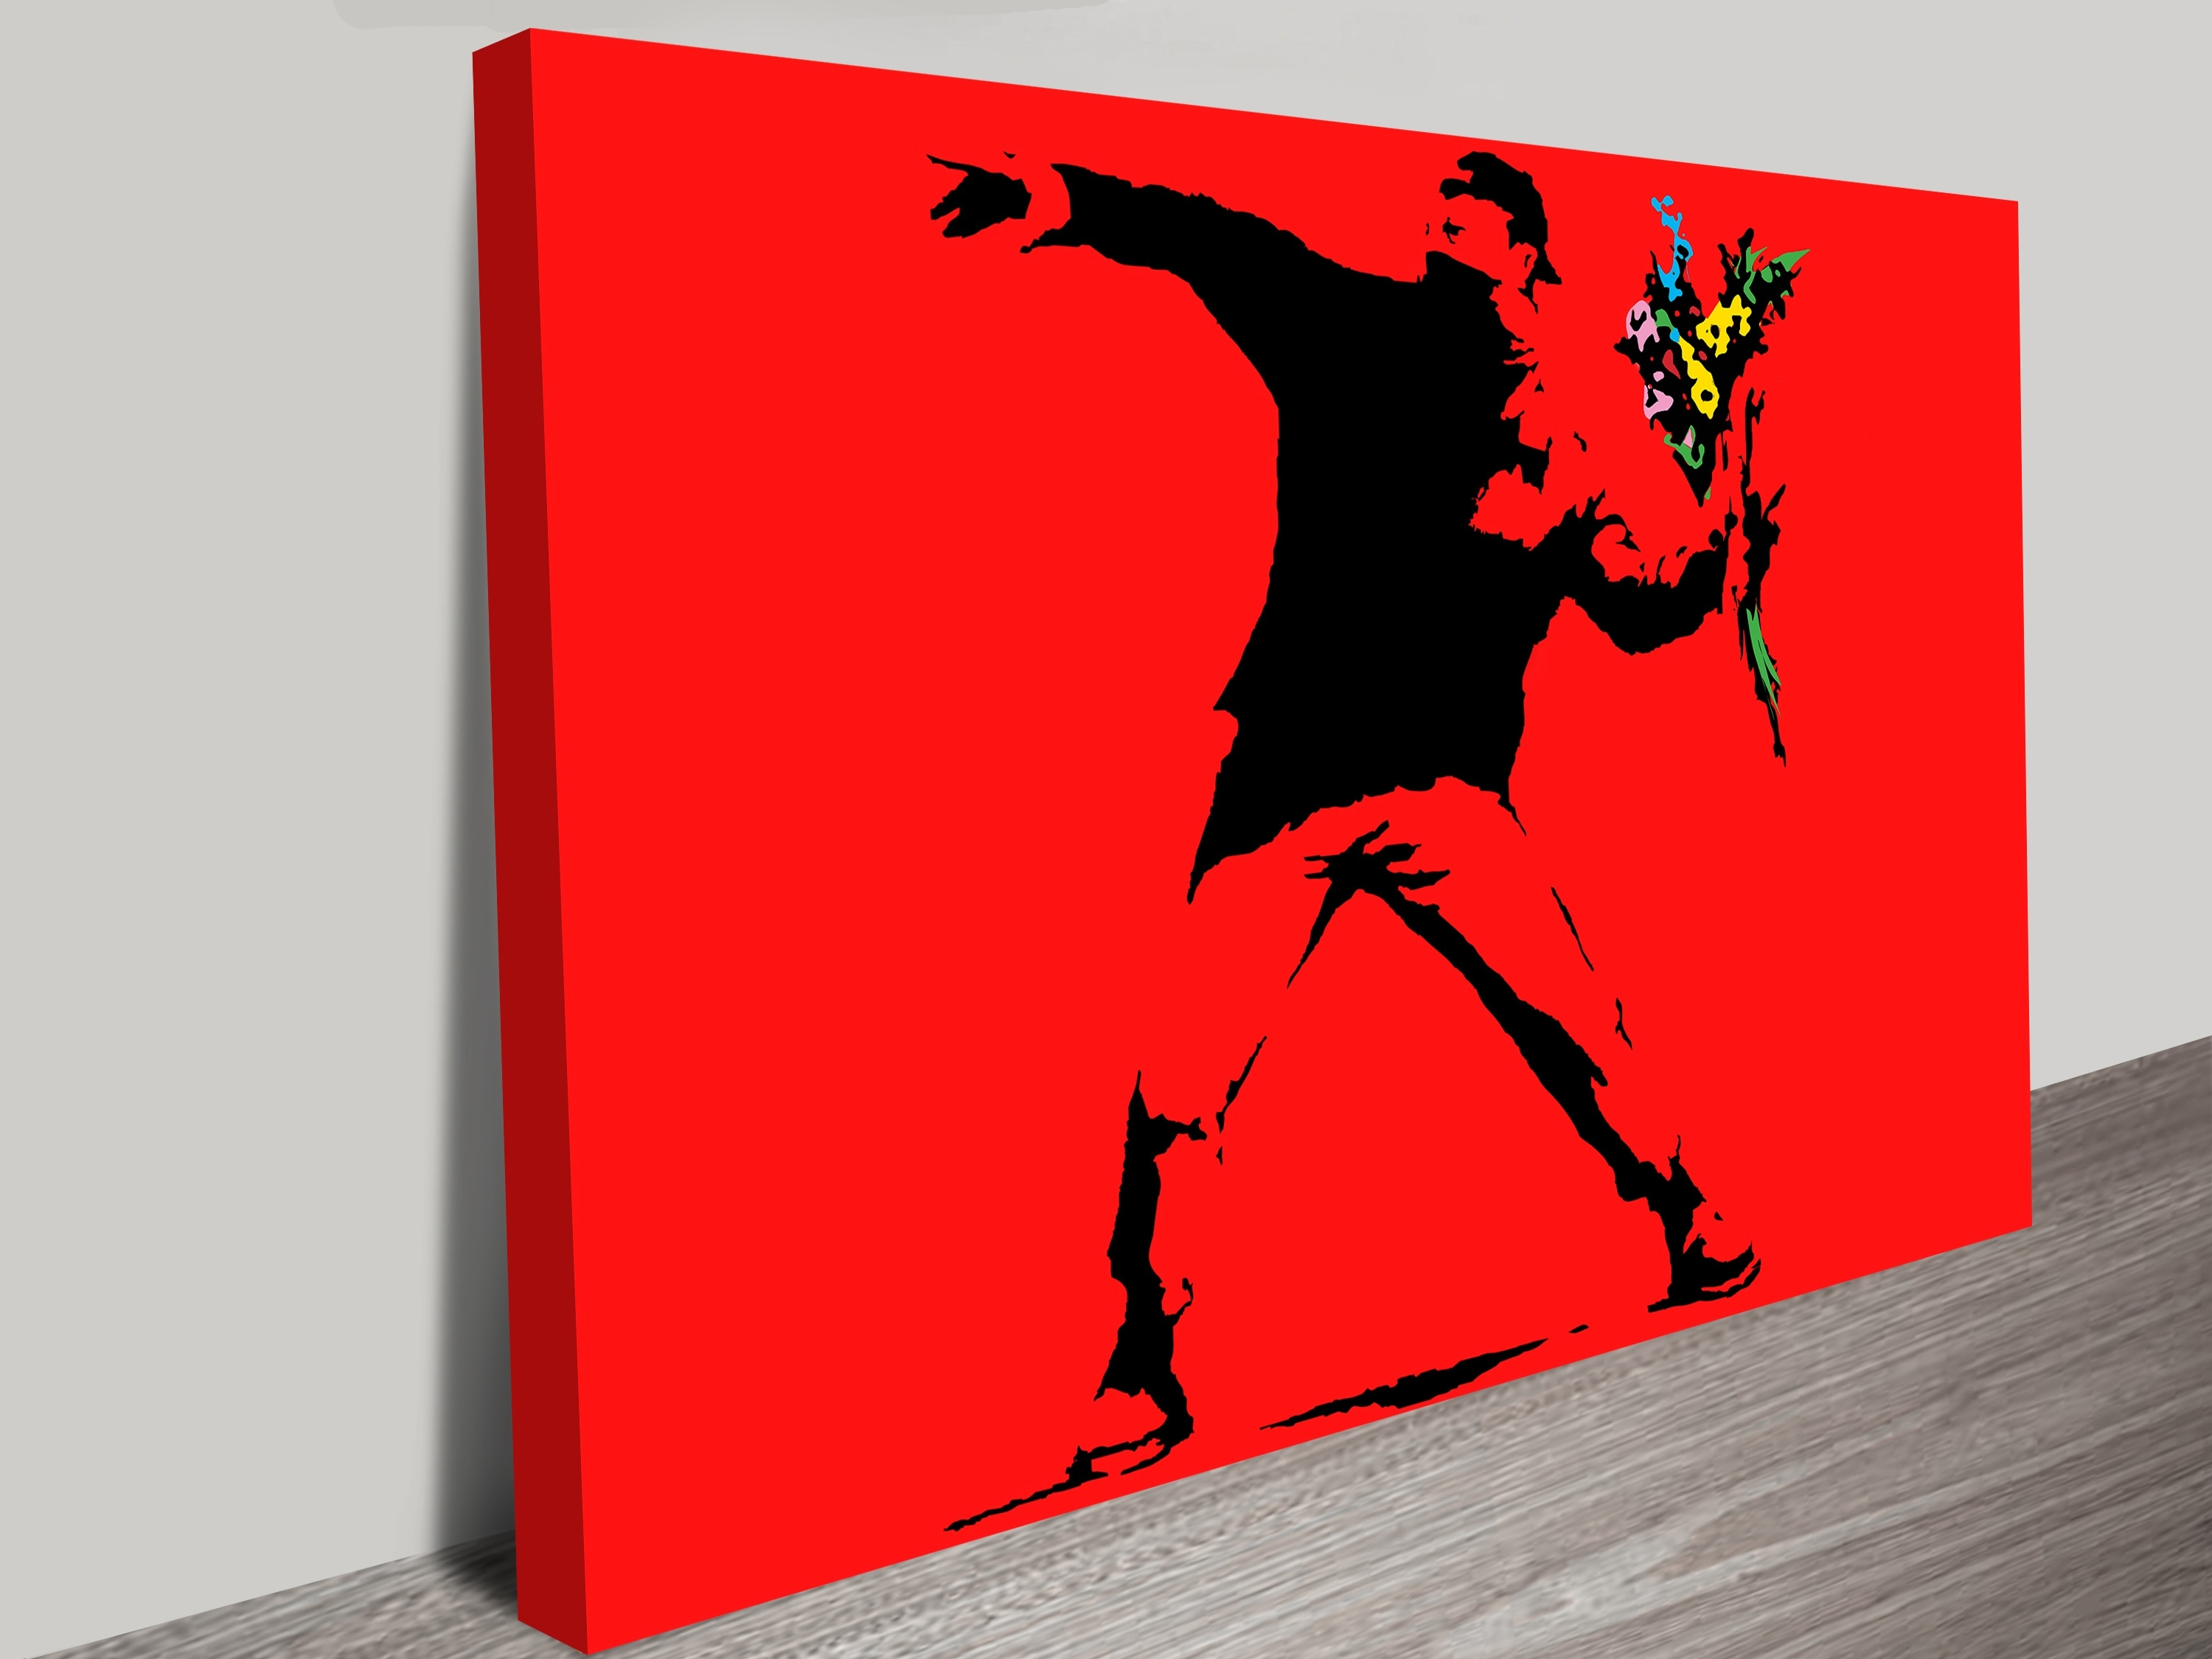 Most Recently Released Banksy Flower Thrower Red Wall Art Print Intended For Red Wall Art (View 8 of 15)